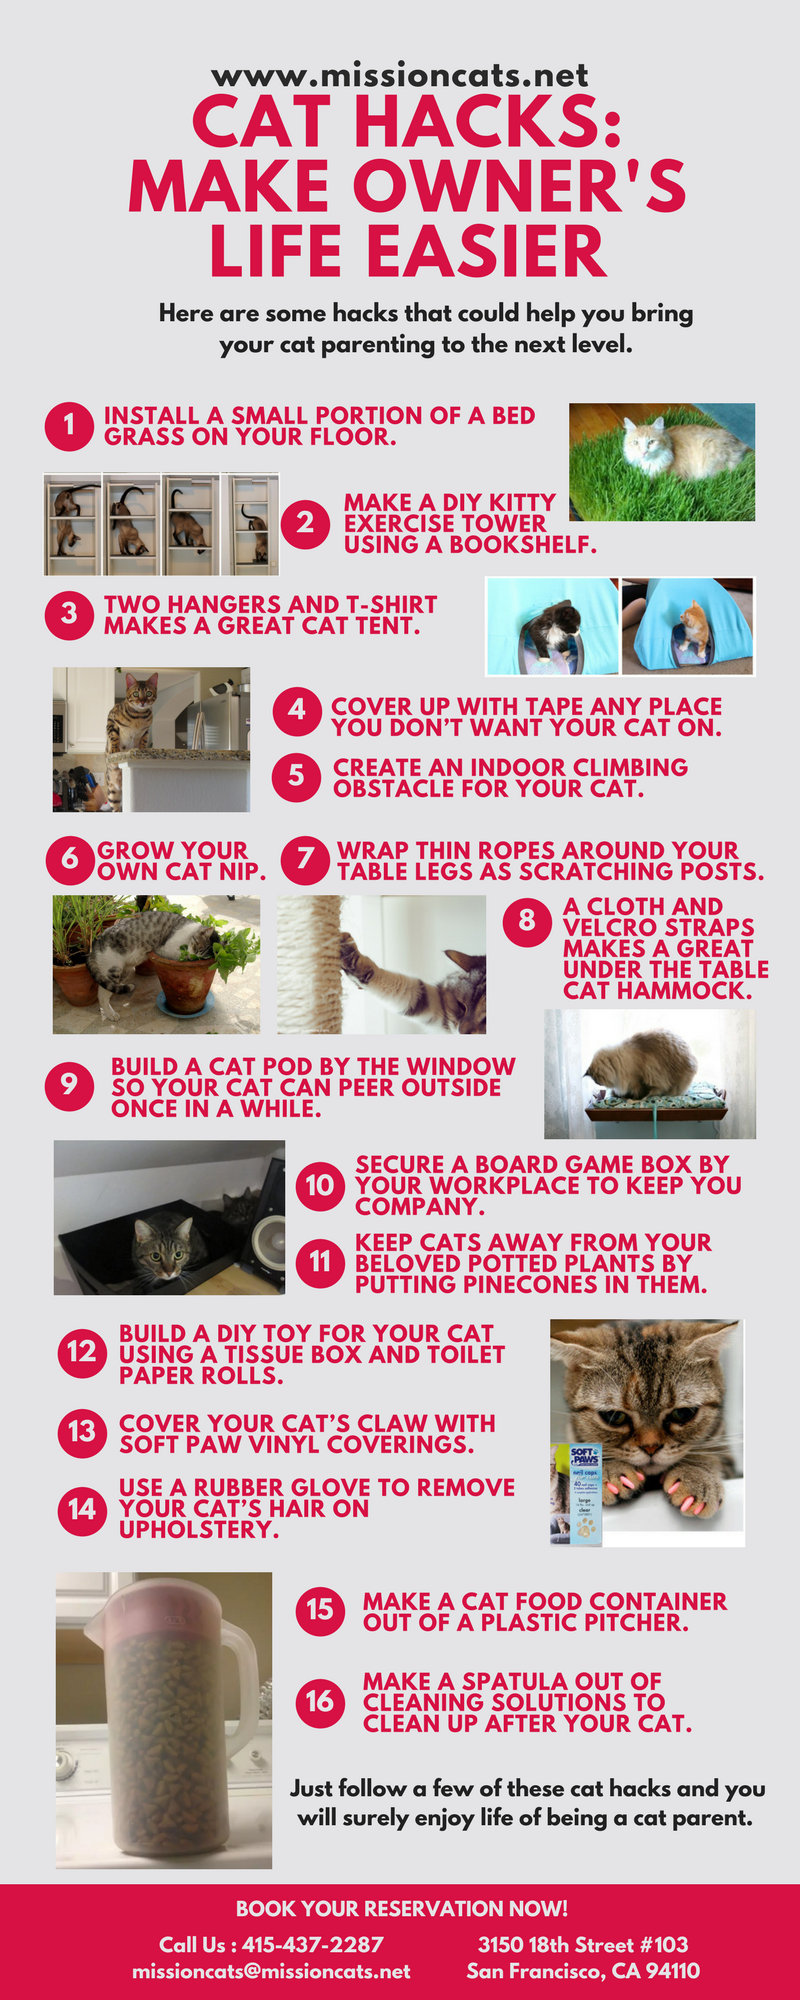 Cat Hacks: Make Owner's life Easier